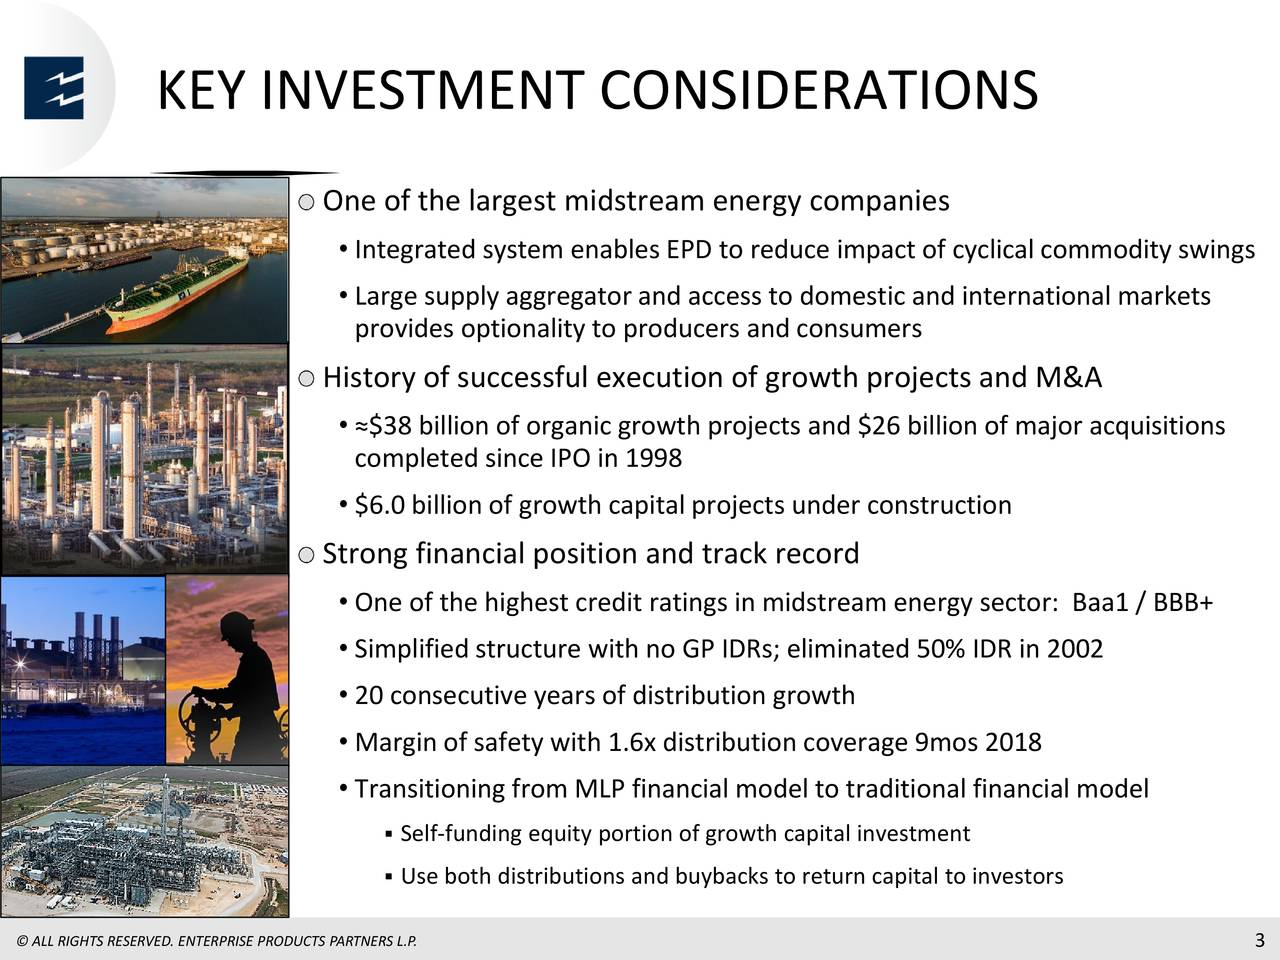 One of the largest midstream energy companies • Integrated system enables EPD to reduce impact of cyclical commodity swings • Large supply aggregator and access to domestic and international markets provides optionality to producers and consumers History of successful execution of growth projects and M&A • ≈$38 billion of organic growth projects and $26 billion of major acquisitions completed since IPO in 1998 • $6.0 billion of growth capital projects under construction Strong financial position and track record • One of the highest credit ratingsin midstream energy sector: Baa1 / BBB+ • Simplified structure with no GPIDRs; eliminated 50% IDR in 2002 • 20 consecutive years of distribution growth • Margin of safety with 1.6x distribution coverage 9mos 2018 • Transitioning from MLP financial model to traditional financial model Self-funding equity portion of growth capital investment Use both distributions and buybacks to return capital to investors